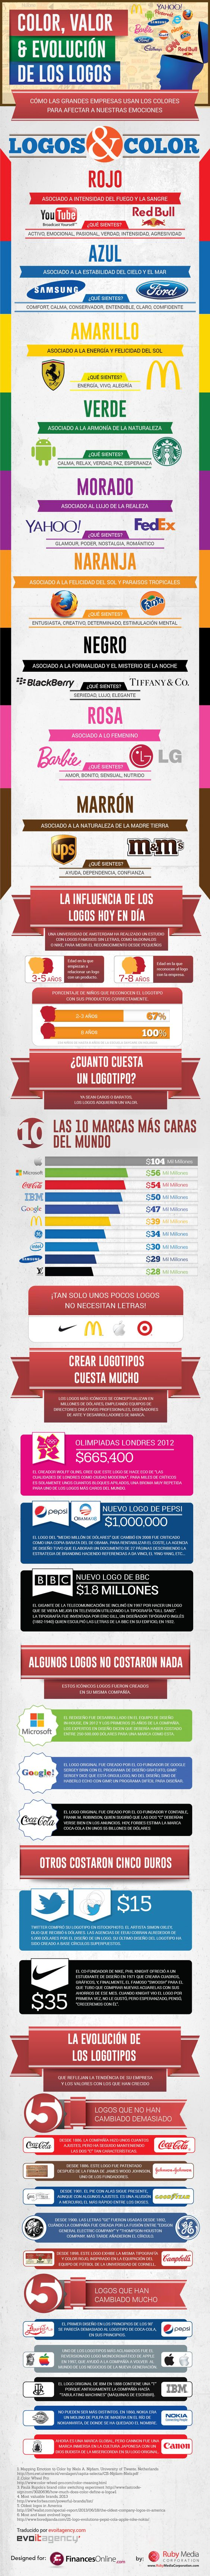 Color - Valor y evolución de los logos #infografia #infographic #marketing: